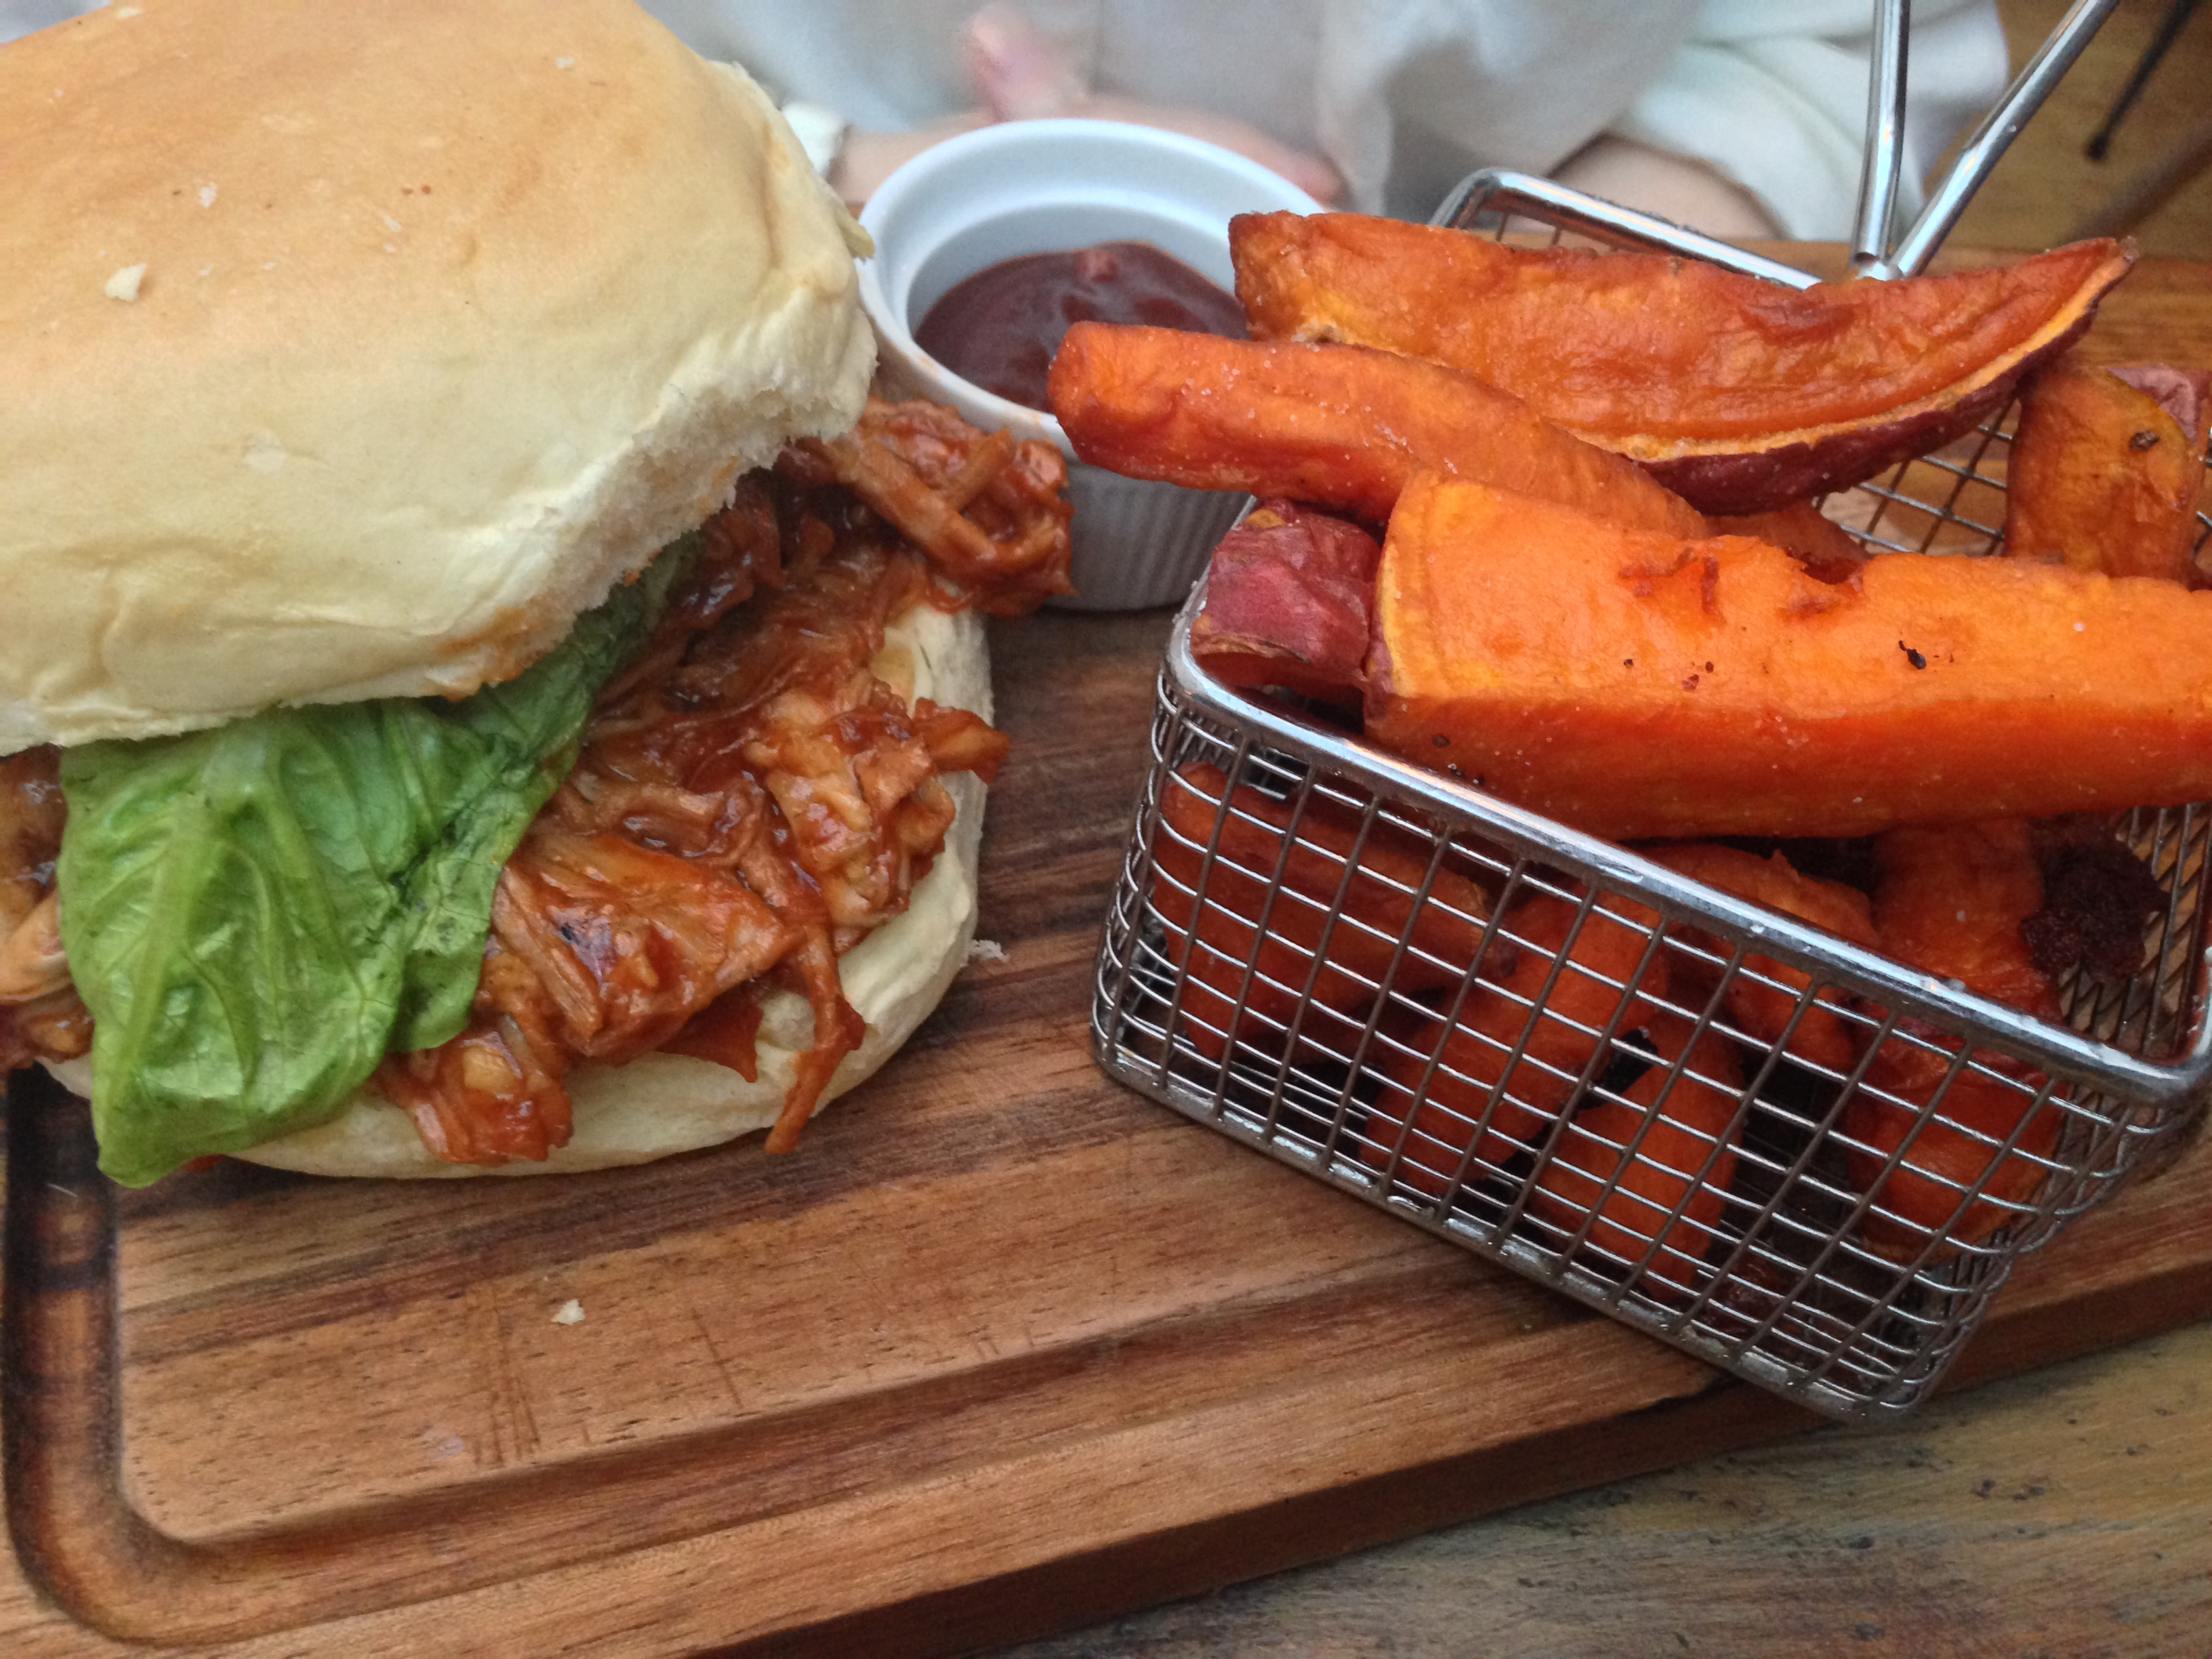 jam jar pulled pork bun